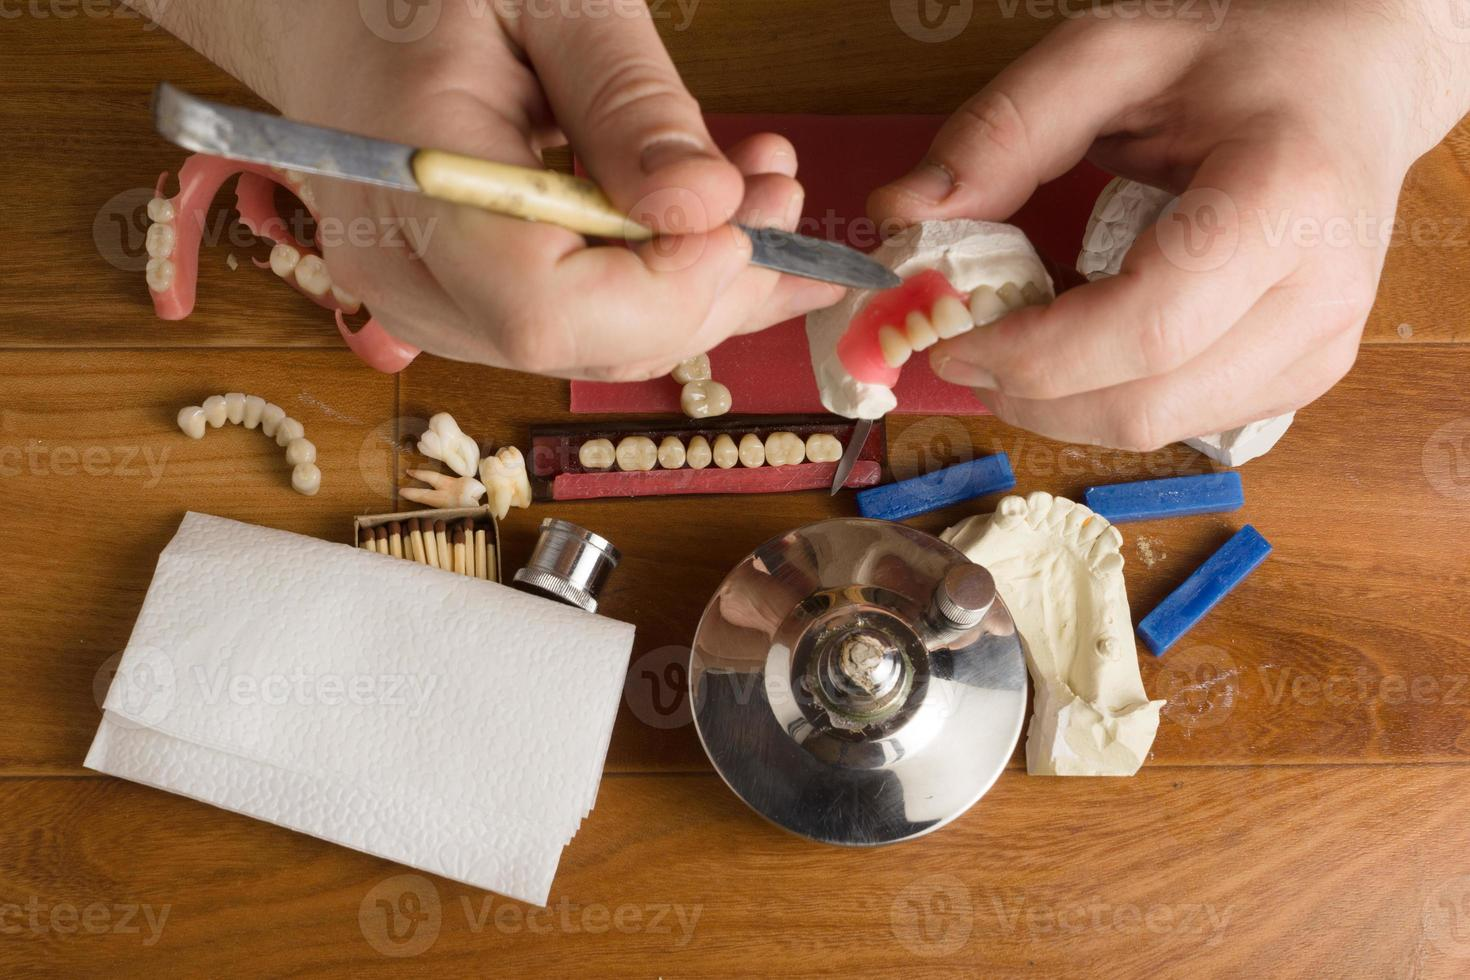 place of work of the dental technician with hands photo